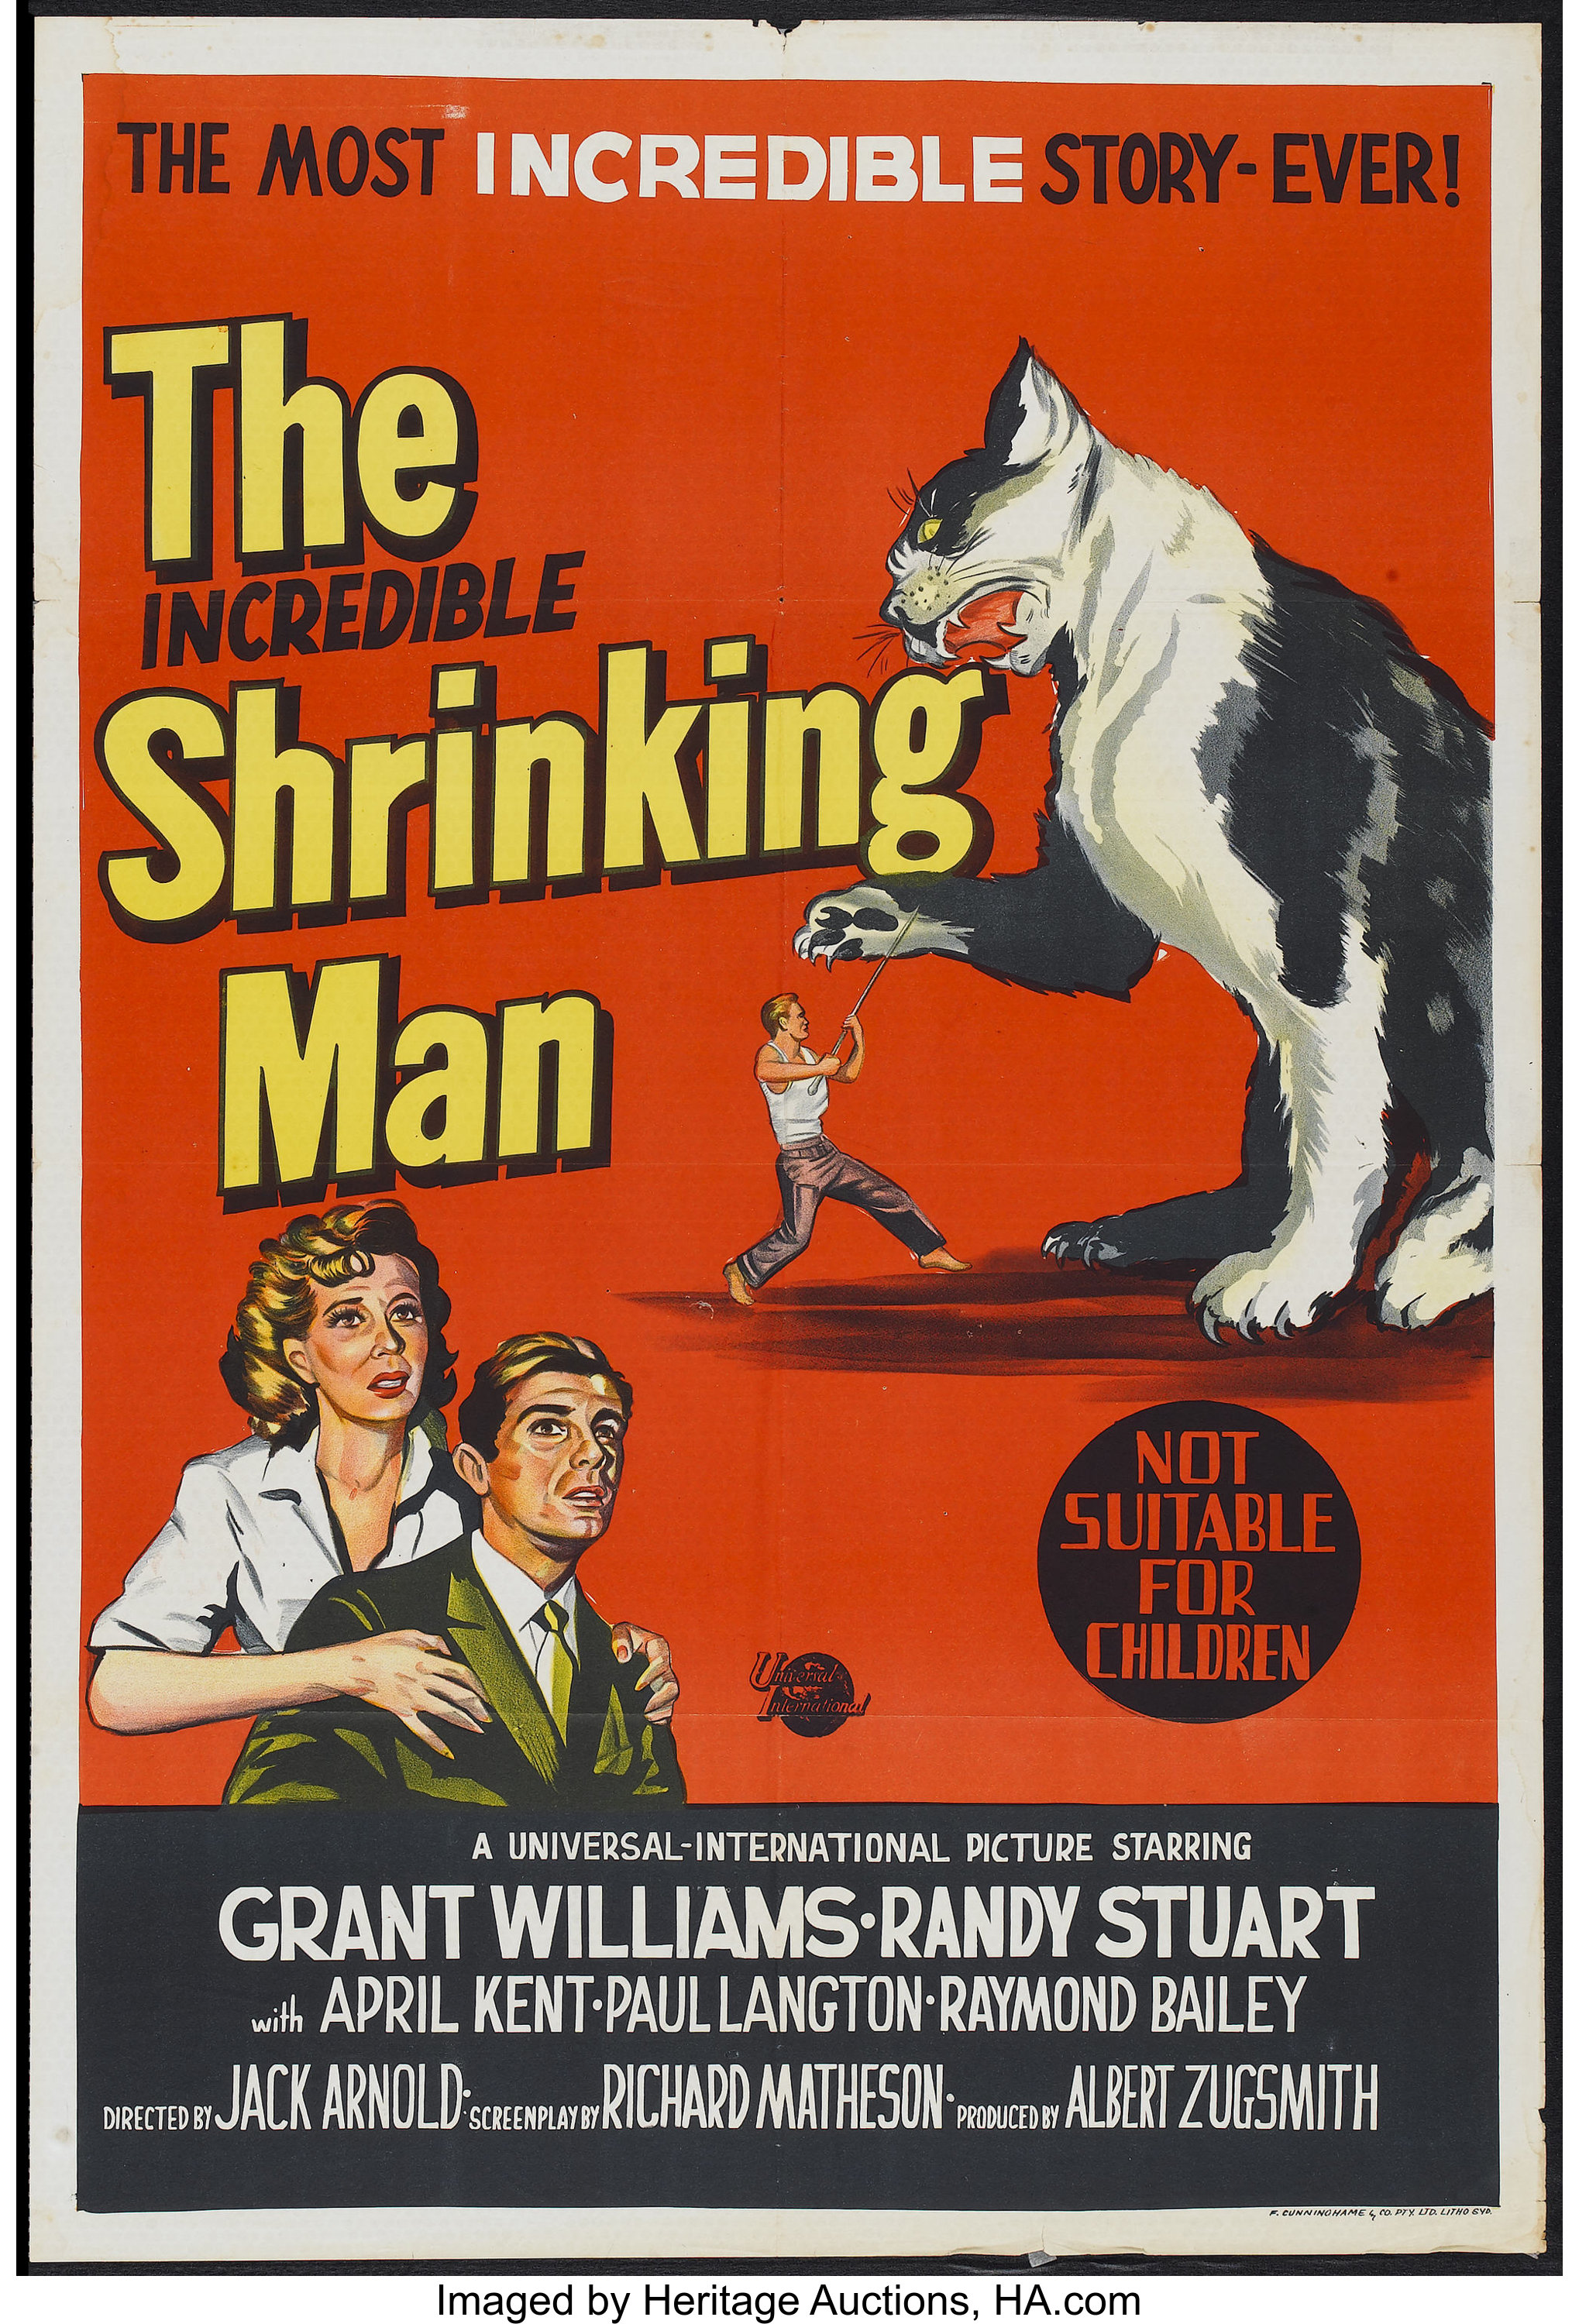 Movie poster.  Cats are terrifying.  NOT SUITABLE FOR CHILDREN.